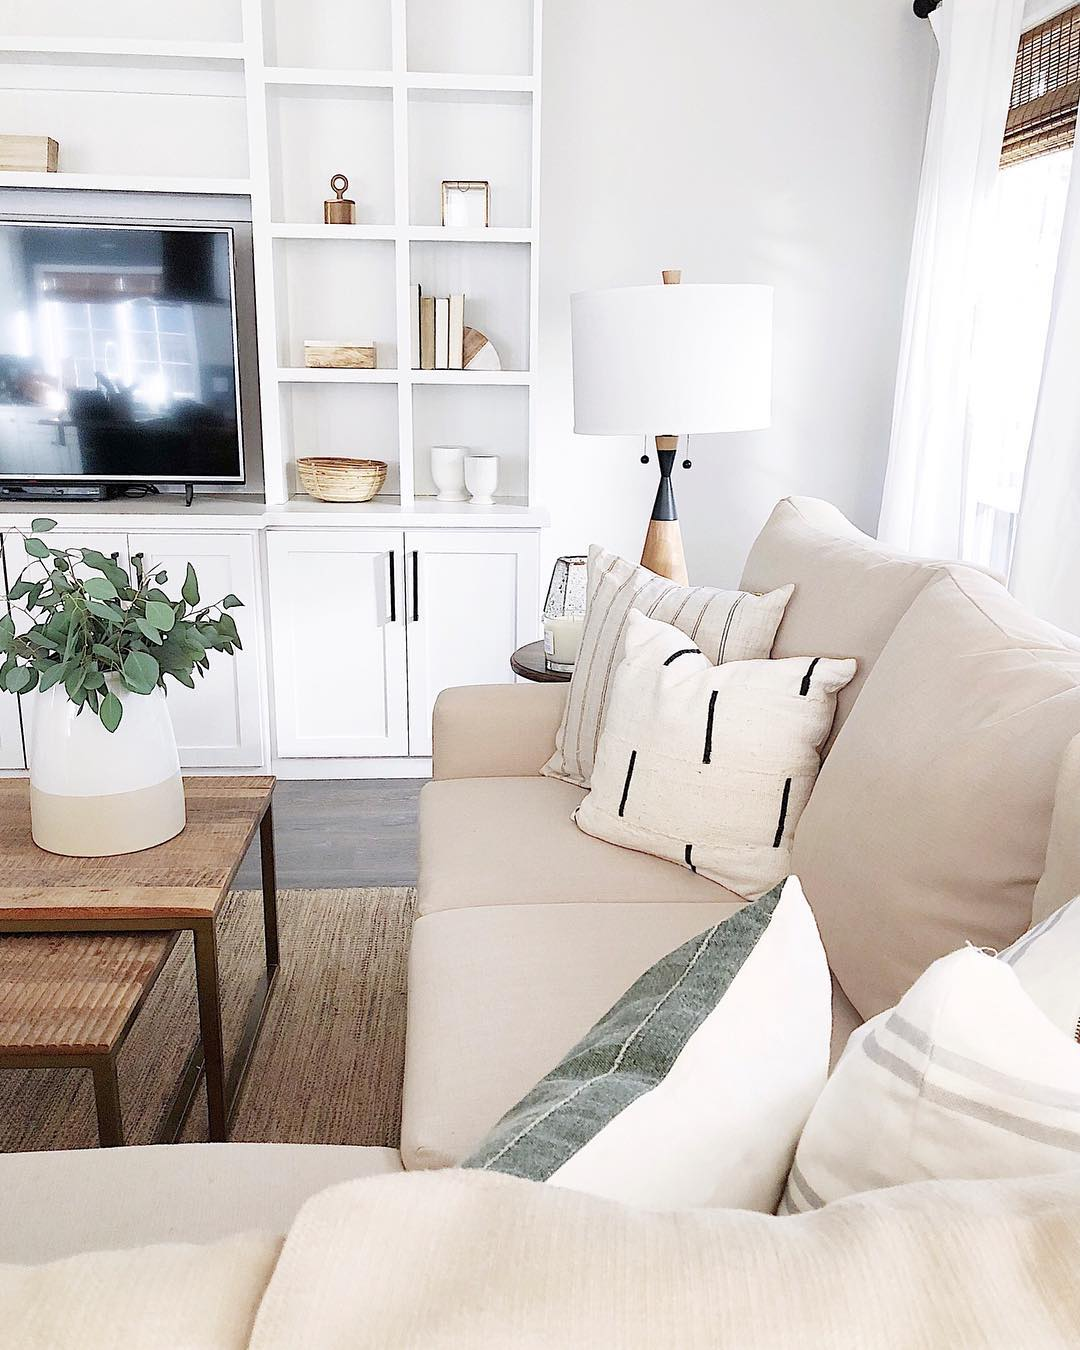 Modern farmhouse neutral sofa in living room